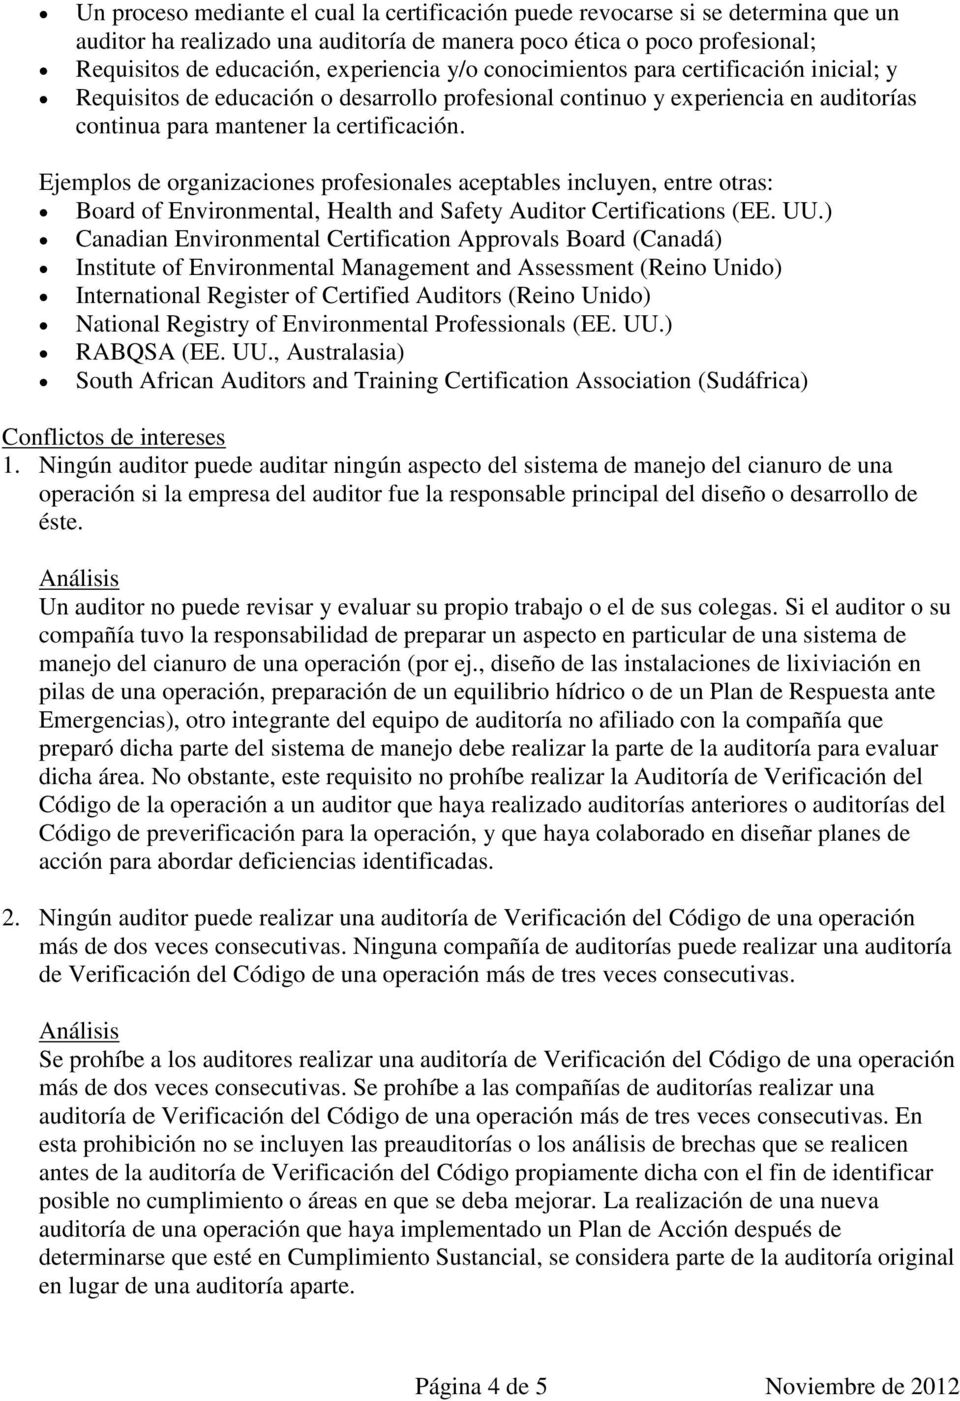 Ejemplos de organizaciones profesionales aceptables incluyen, entre otras: Board of Environmental, Health and Safety Auditor Certifications (EE. UU.